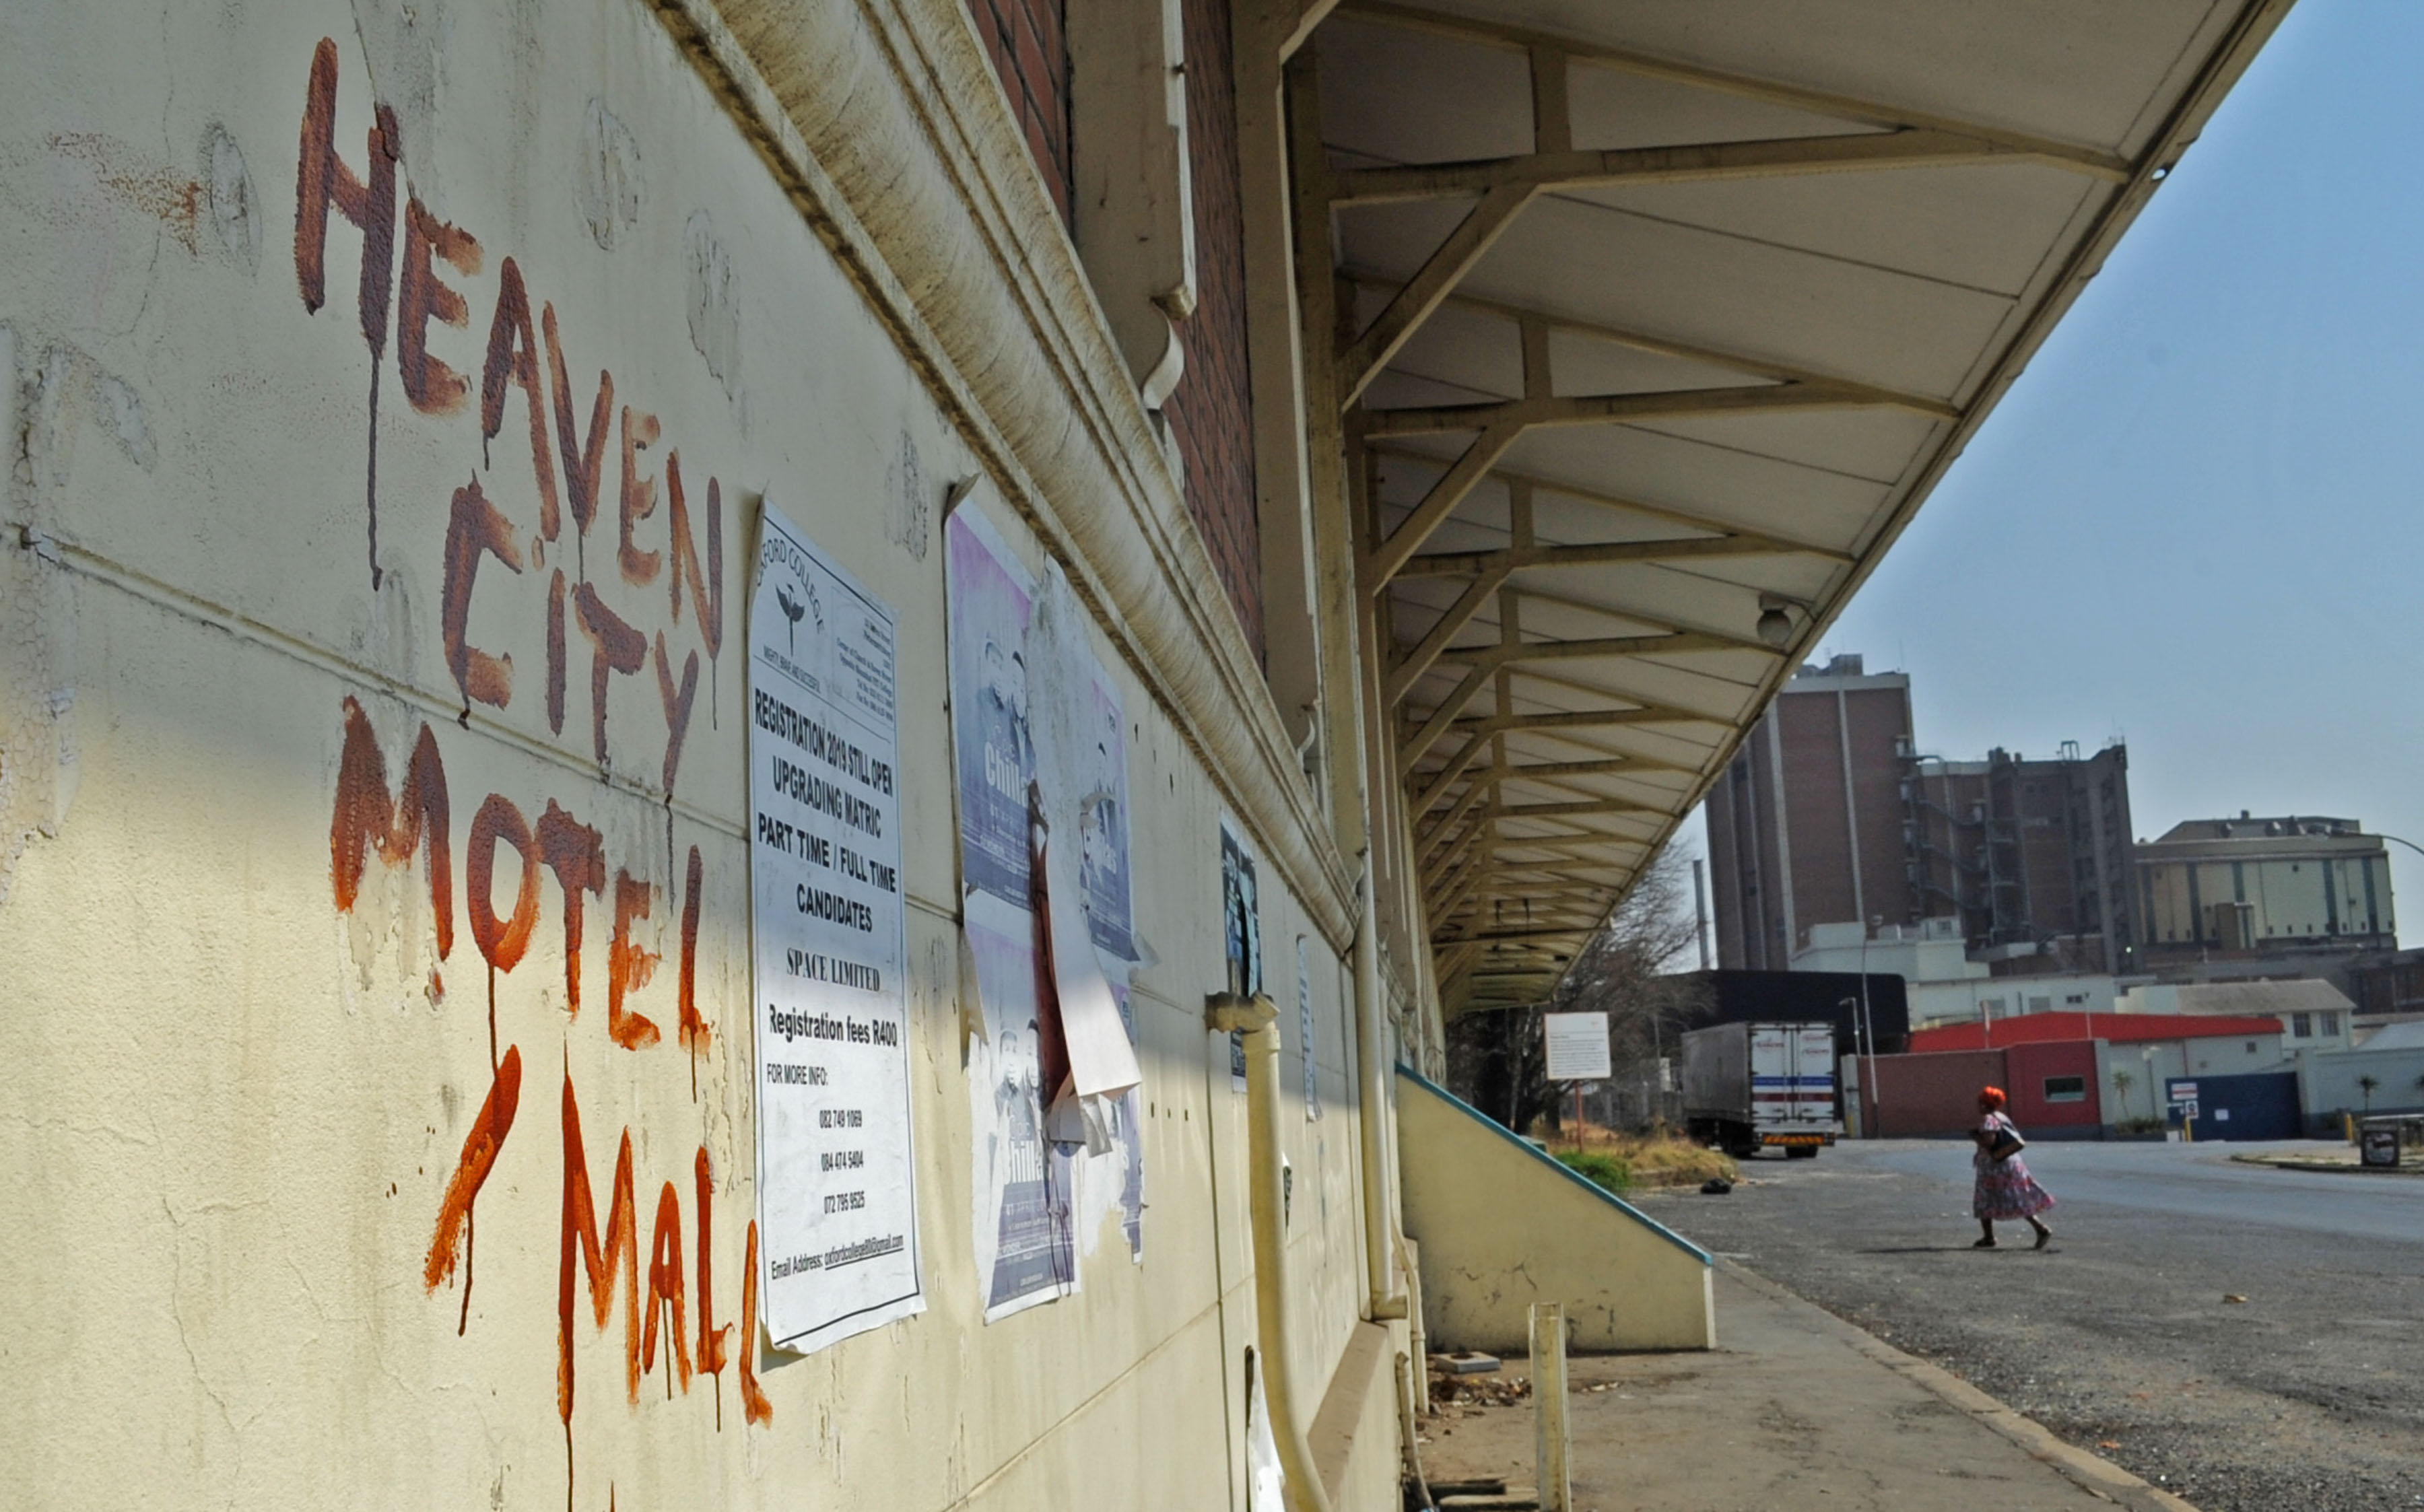 7 August 2019: The defaced facade of the train station in Estcourt. Unemployment is at a record high with minimal job prospects in the town.